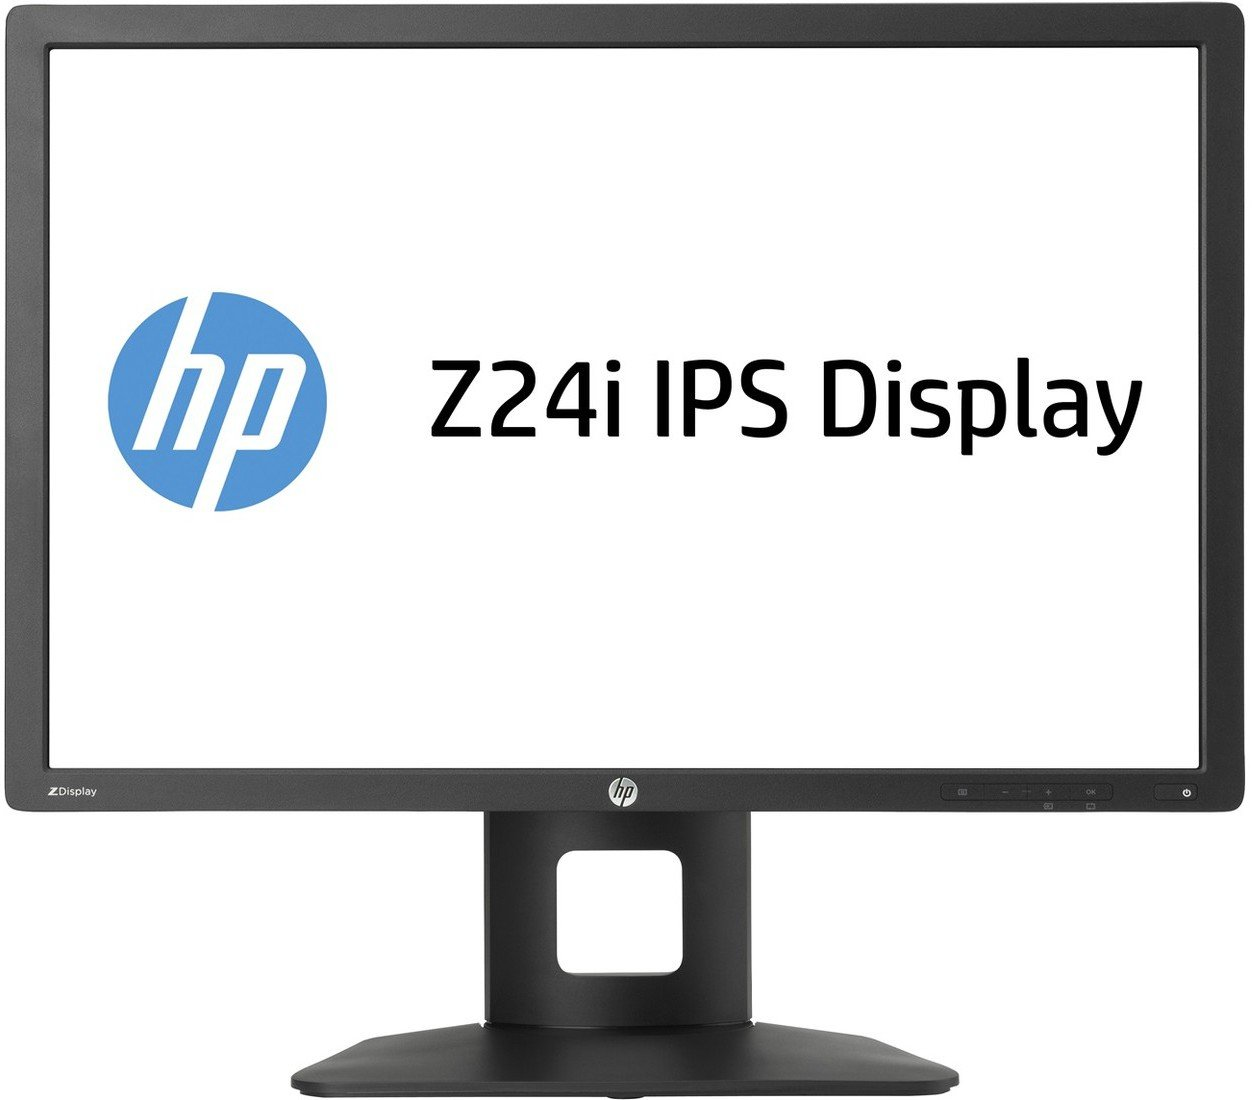 hp z24i 24 zoll d7p53a4 d7p53at test monitor. Black Bedroom Furniture Sets. Home Design Ideas